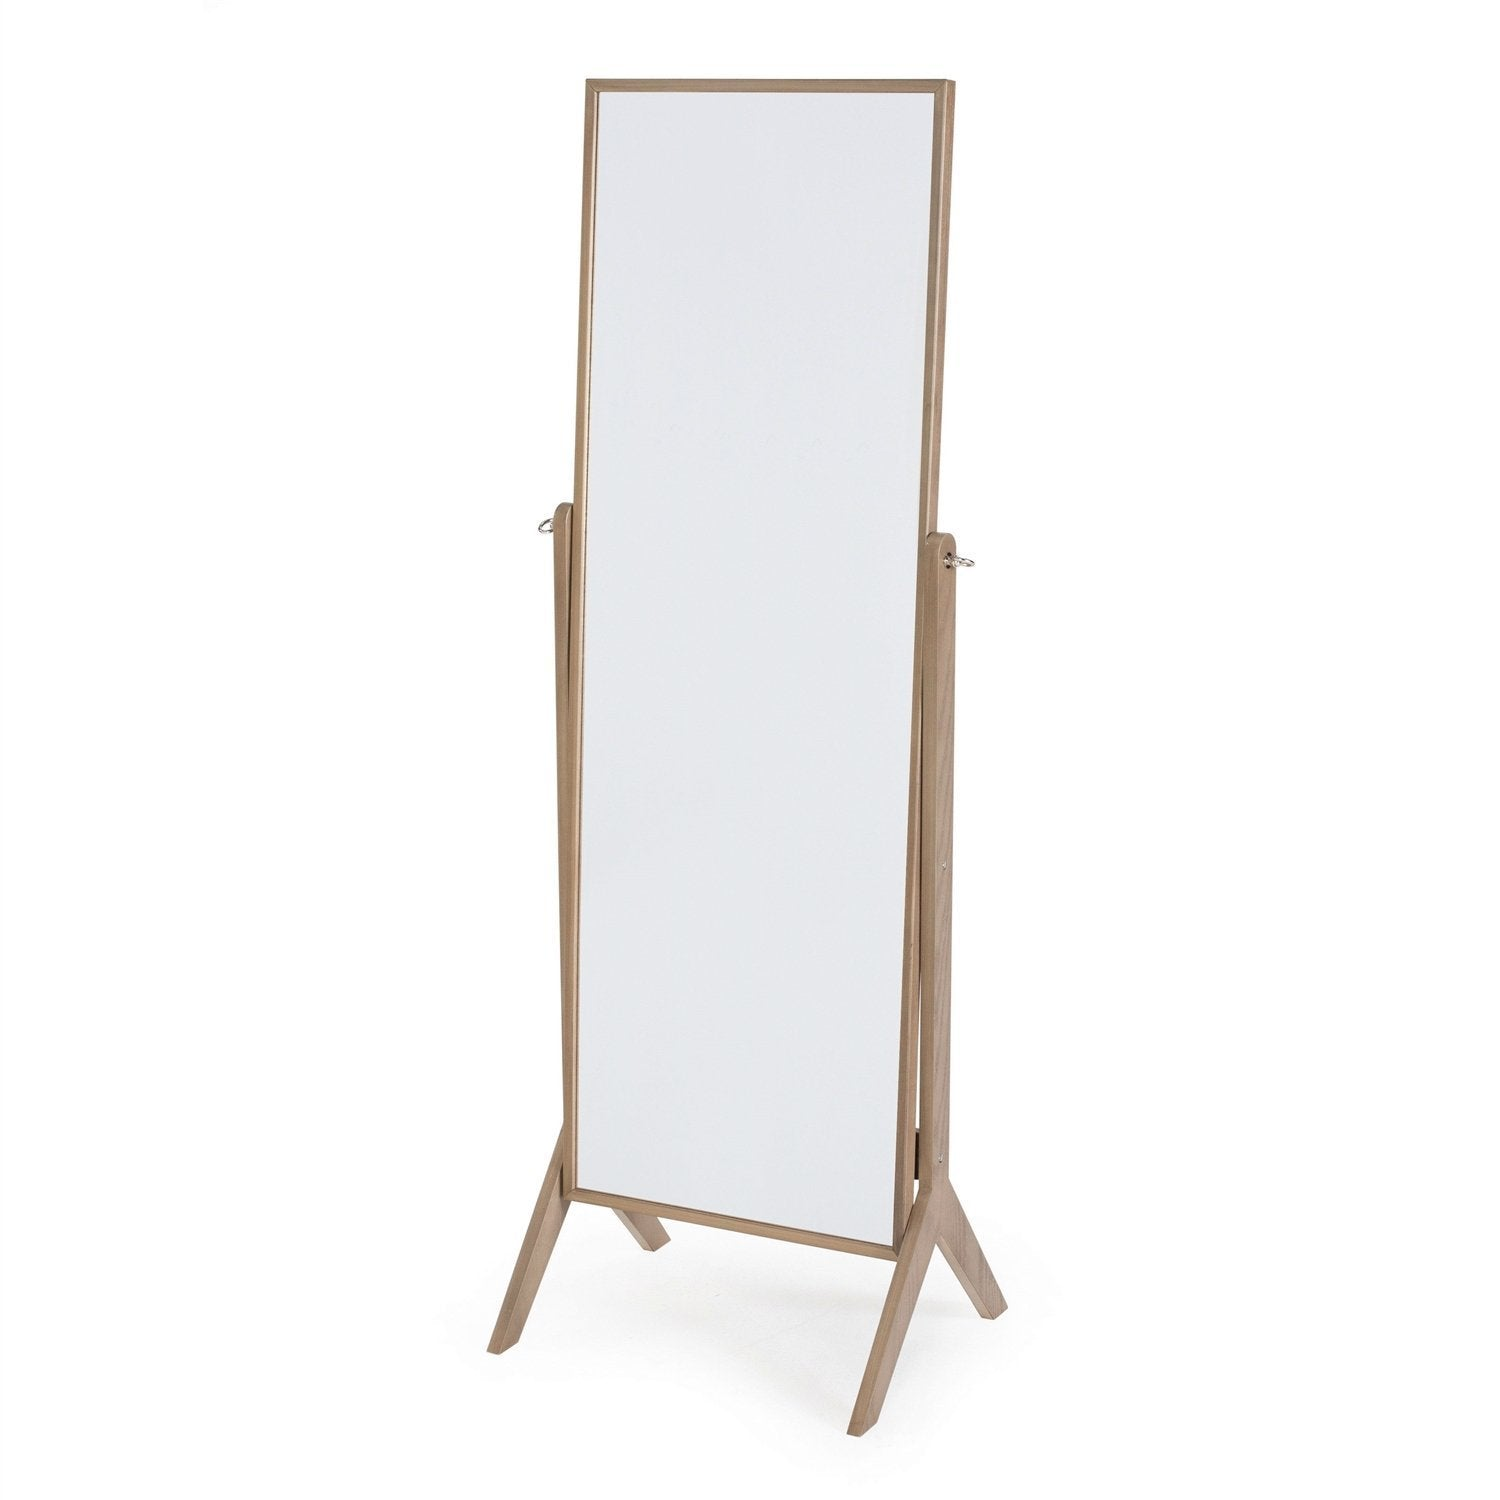 Marklund Floor Mirror.